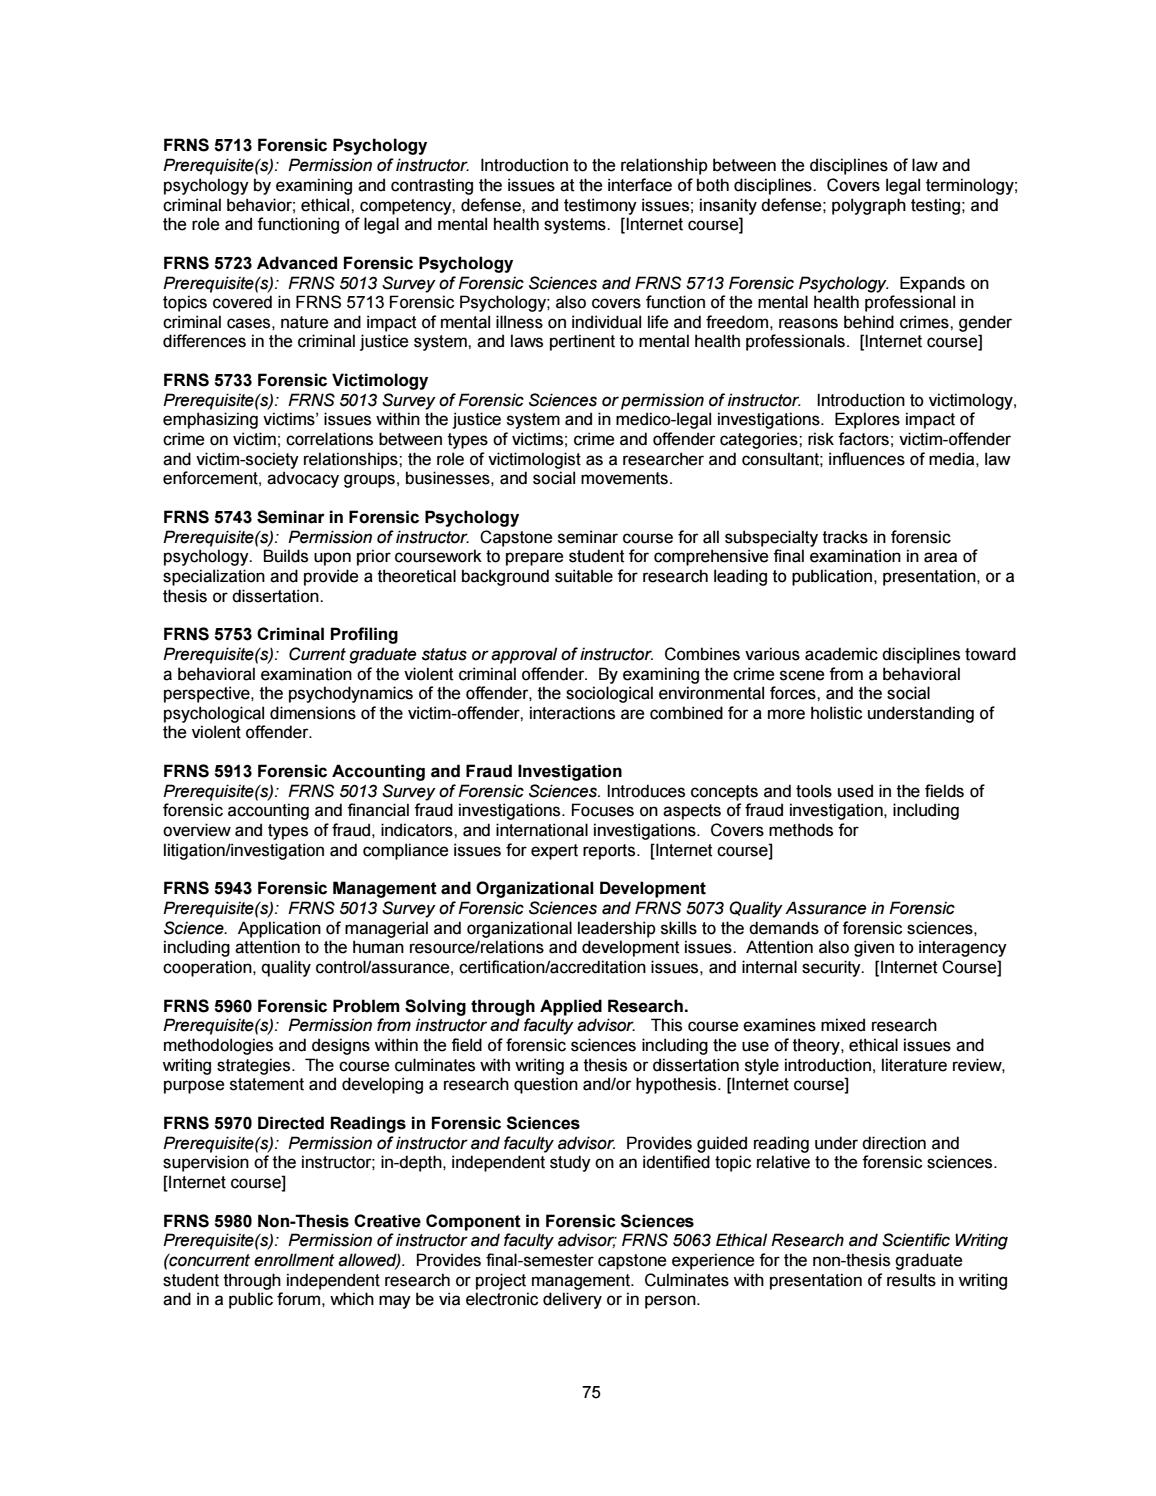 009 Research Paper Forensic Psychology Topics For Page 75 Unique Full